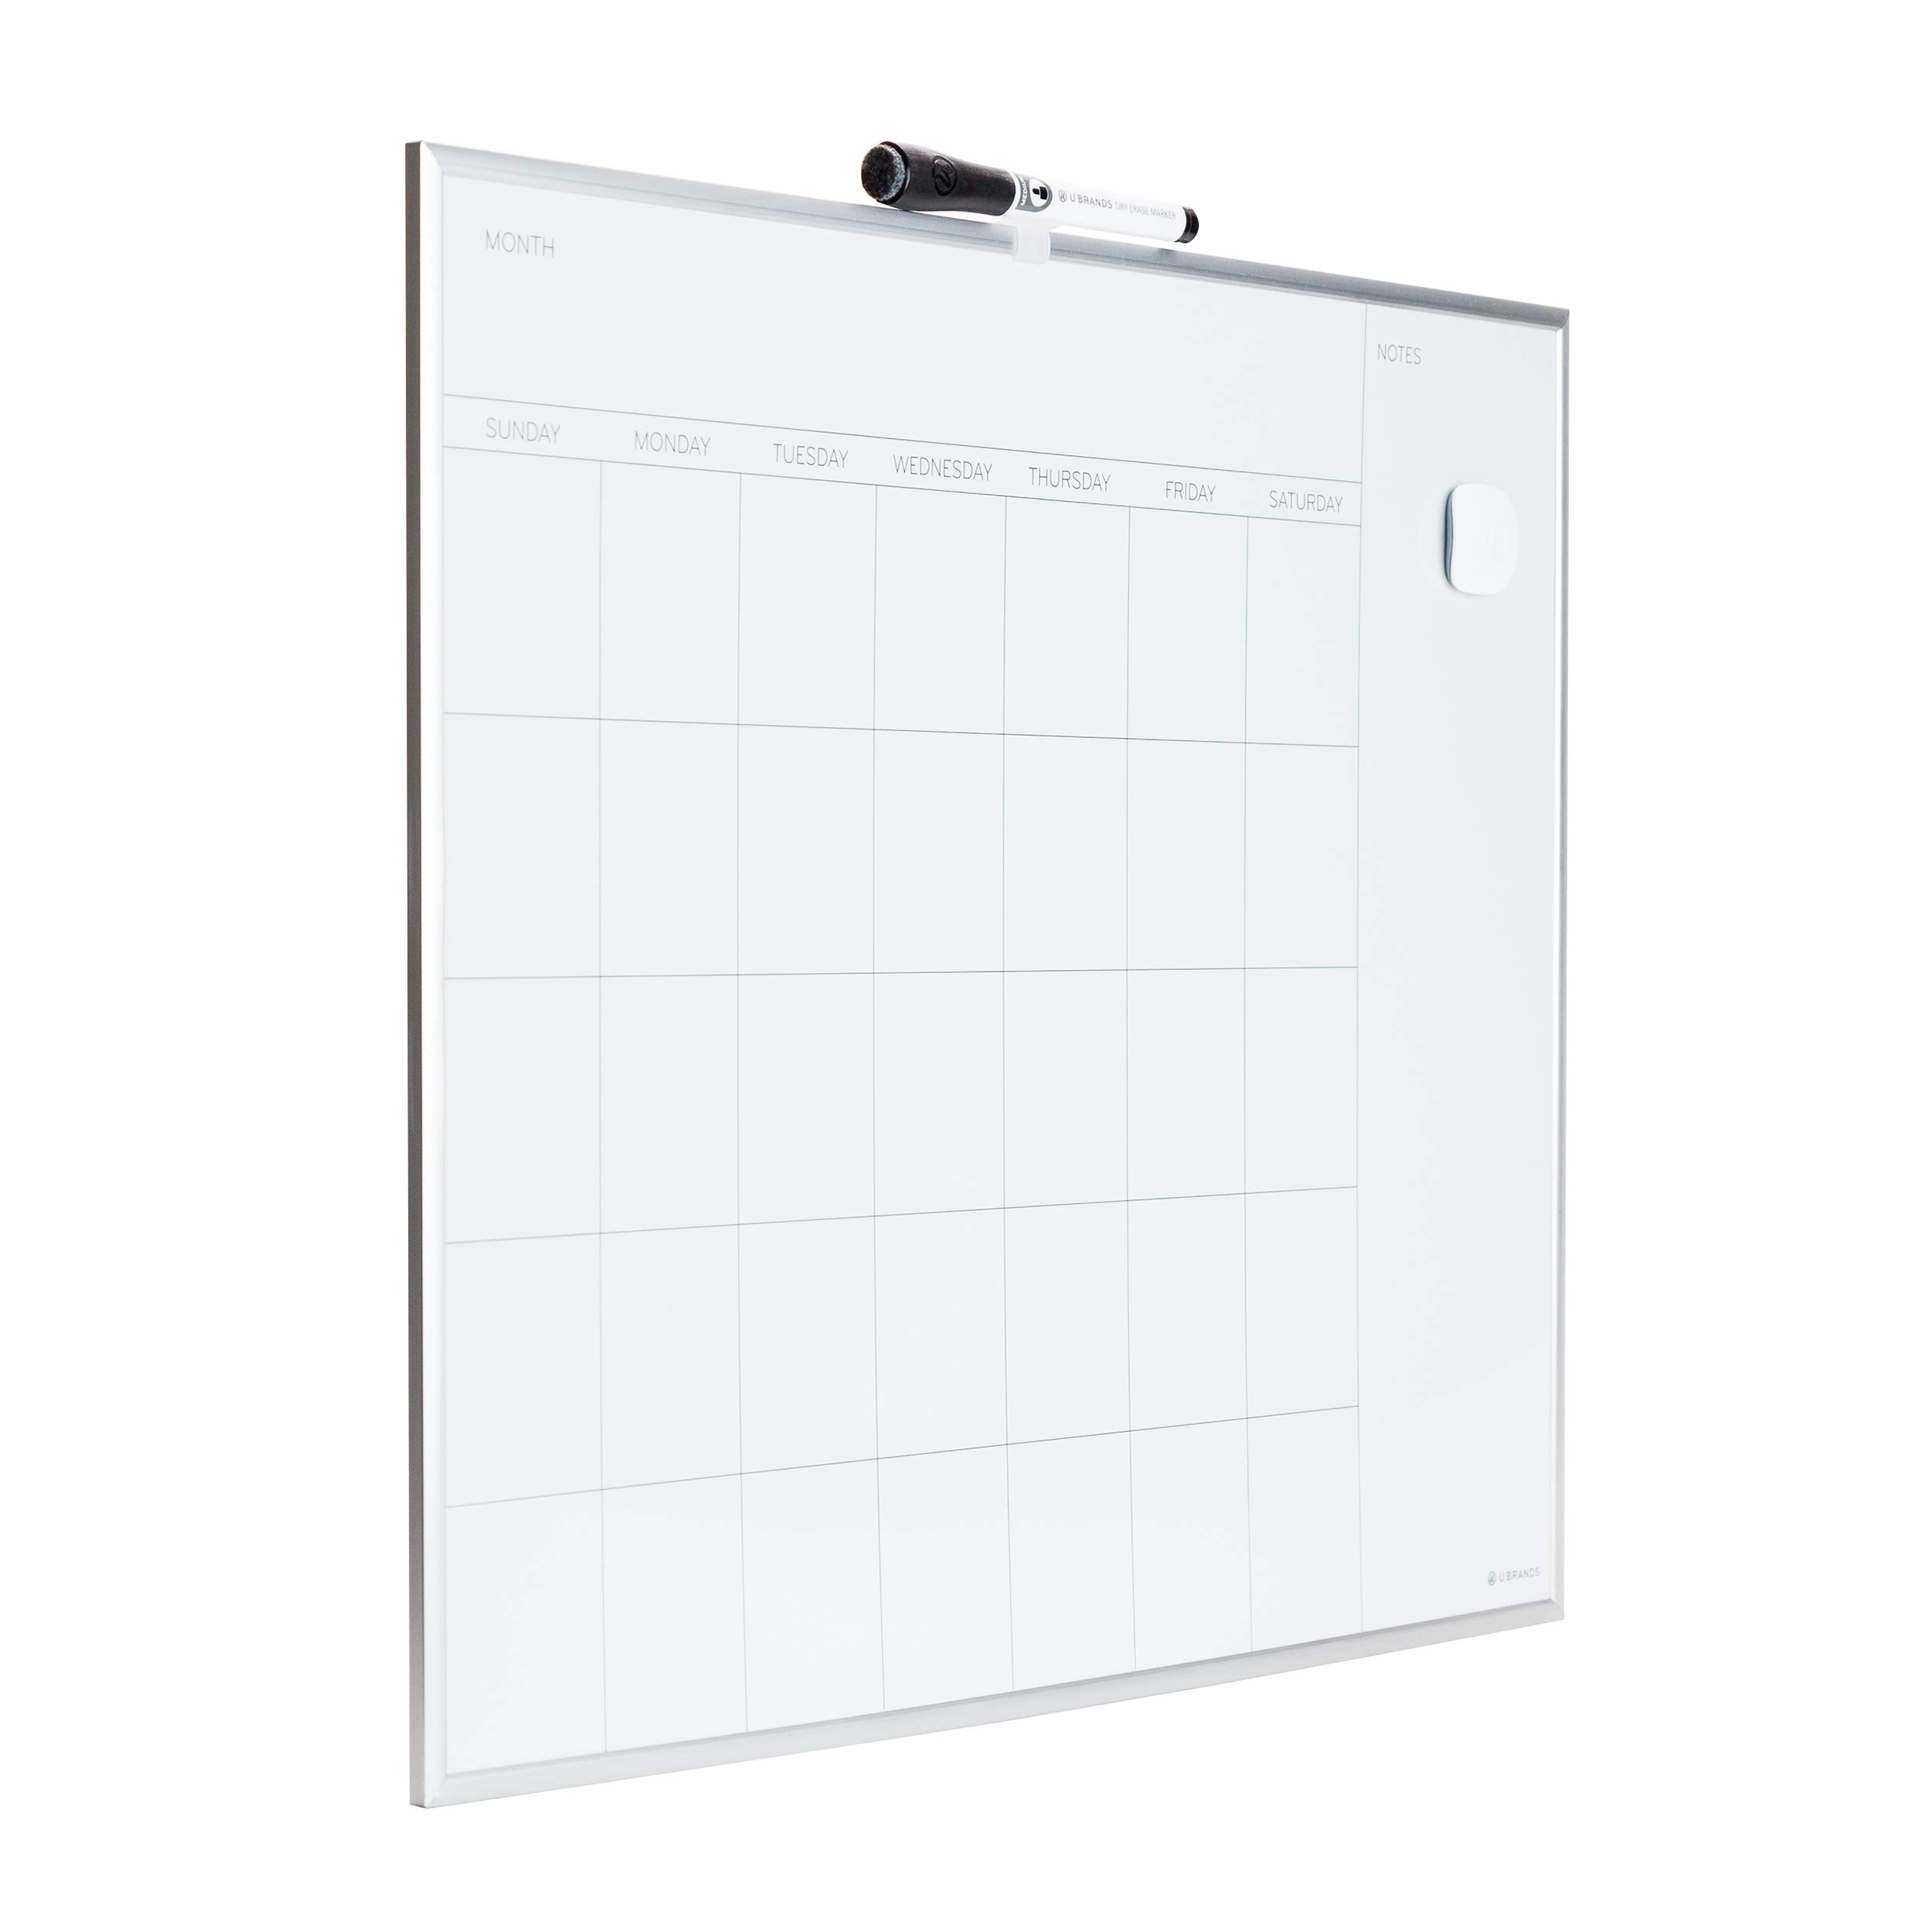 U Brands Magnetic Monthly Calendar Dry Erase Board, 20 x 16 Inches, Silver Aluminum Frame by U Brands (Image #2)